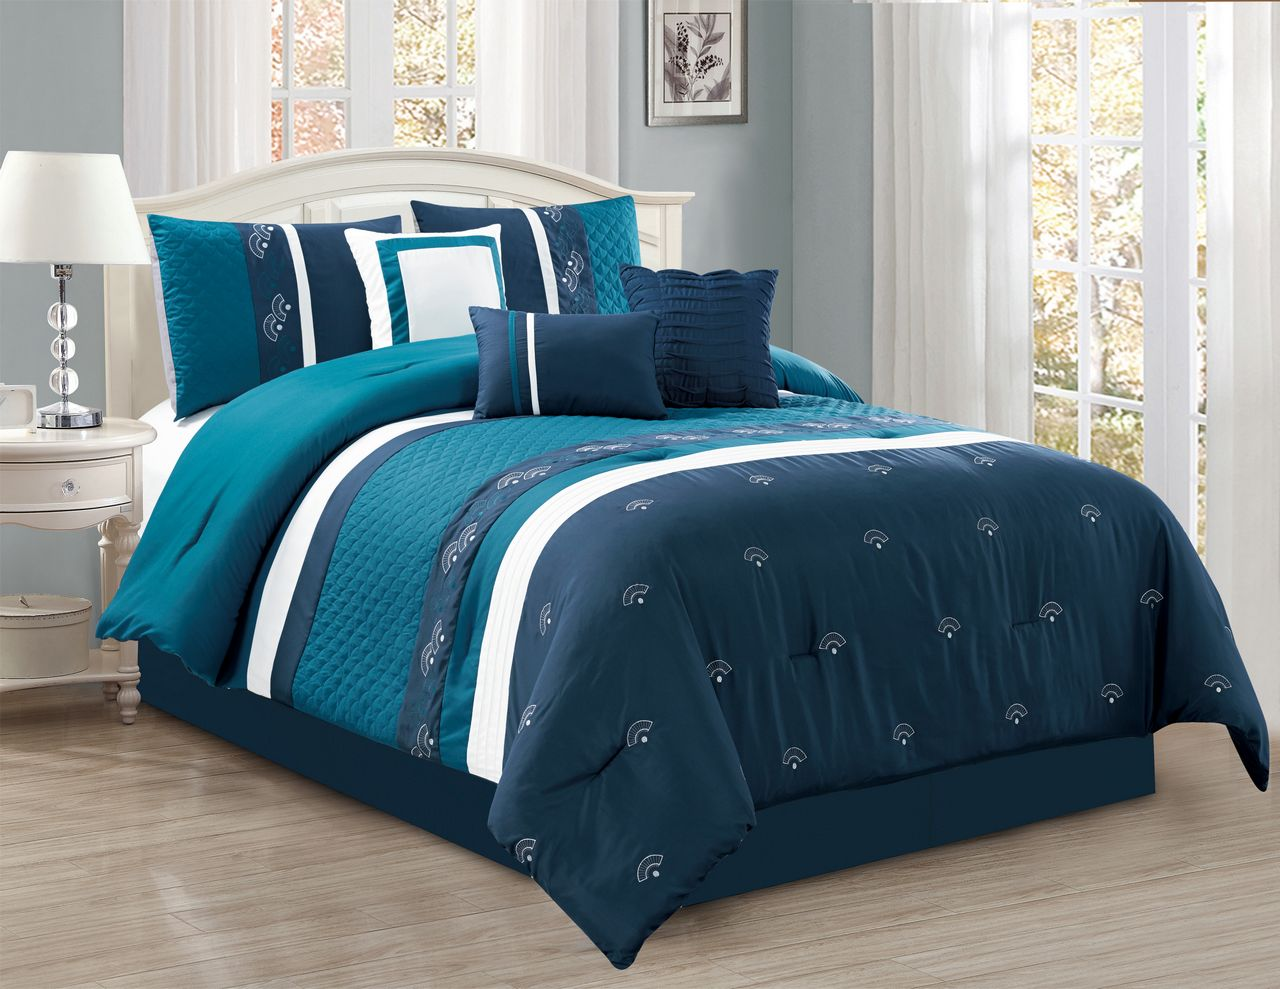 7 Piece Embroidered Fan Navy/Teal/White Comforter Set